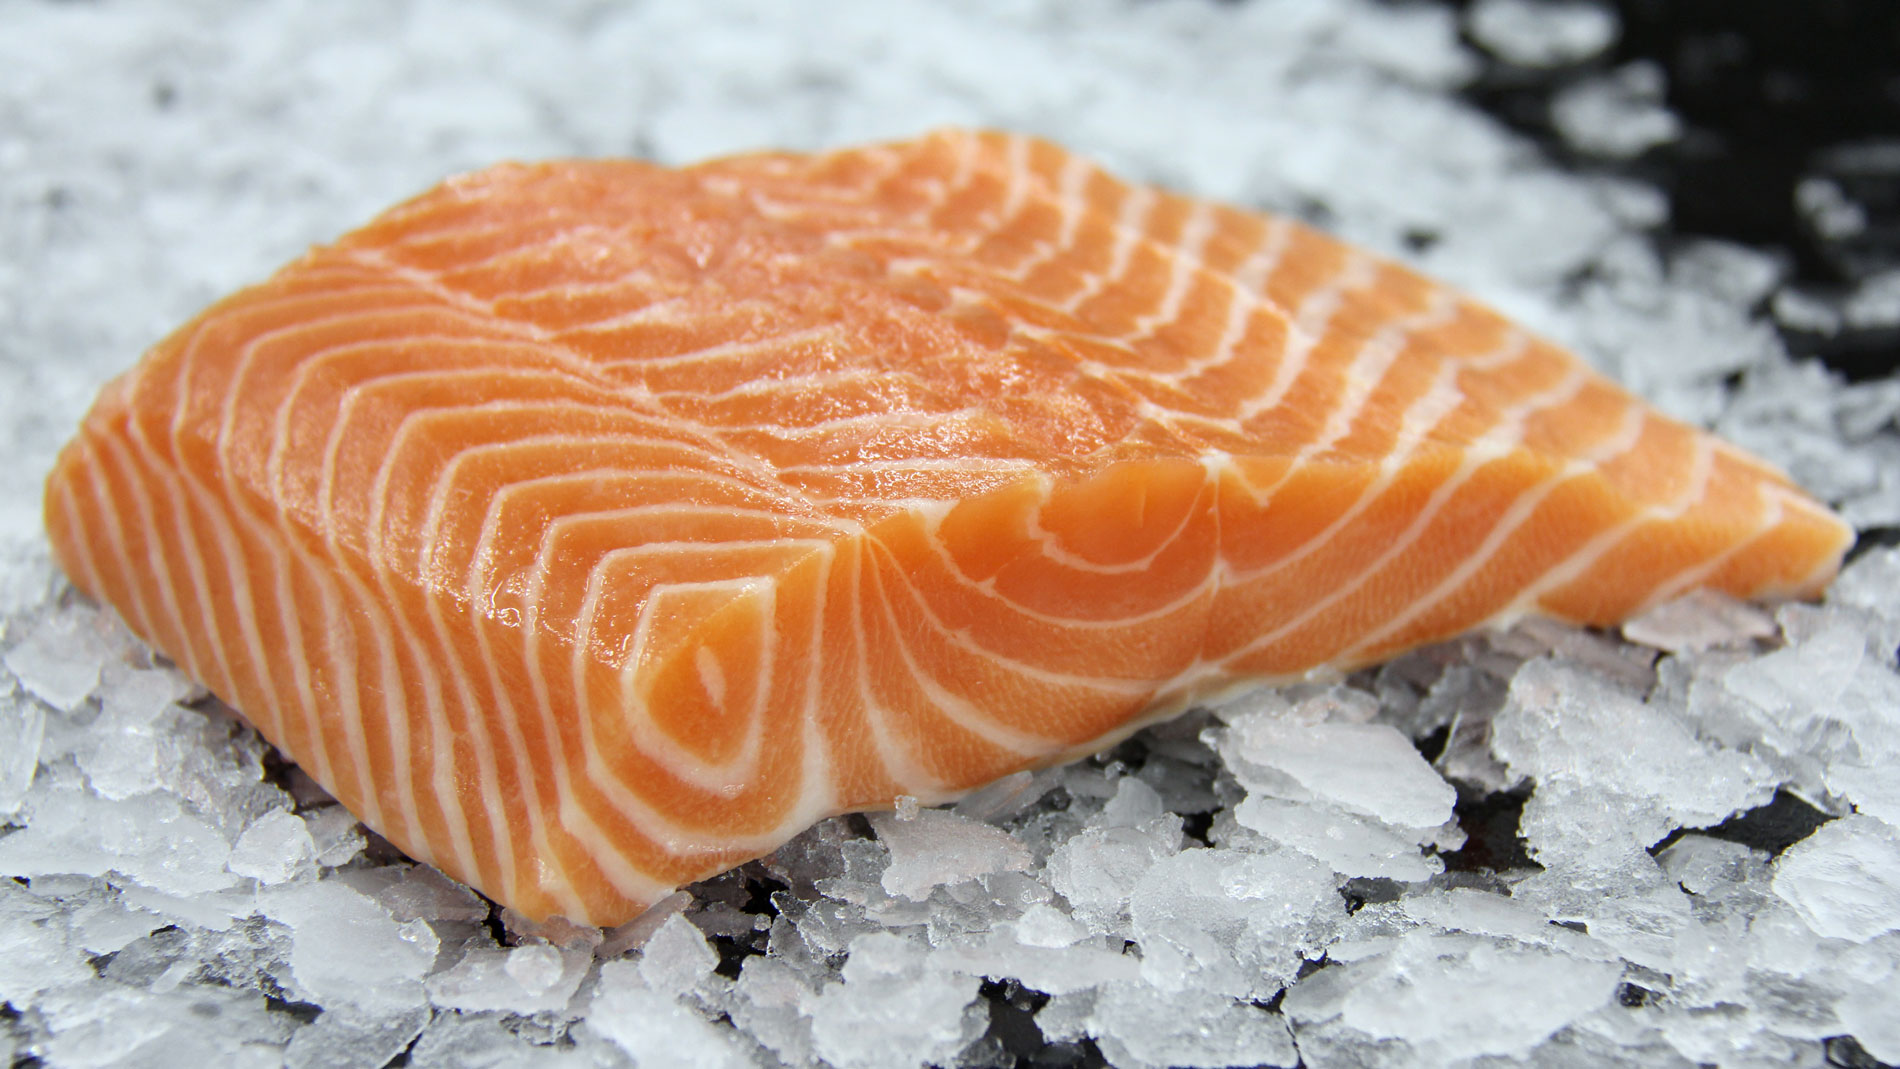 The 6 best sites to buy sushi grade fish online according for Fish to buy